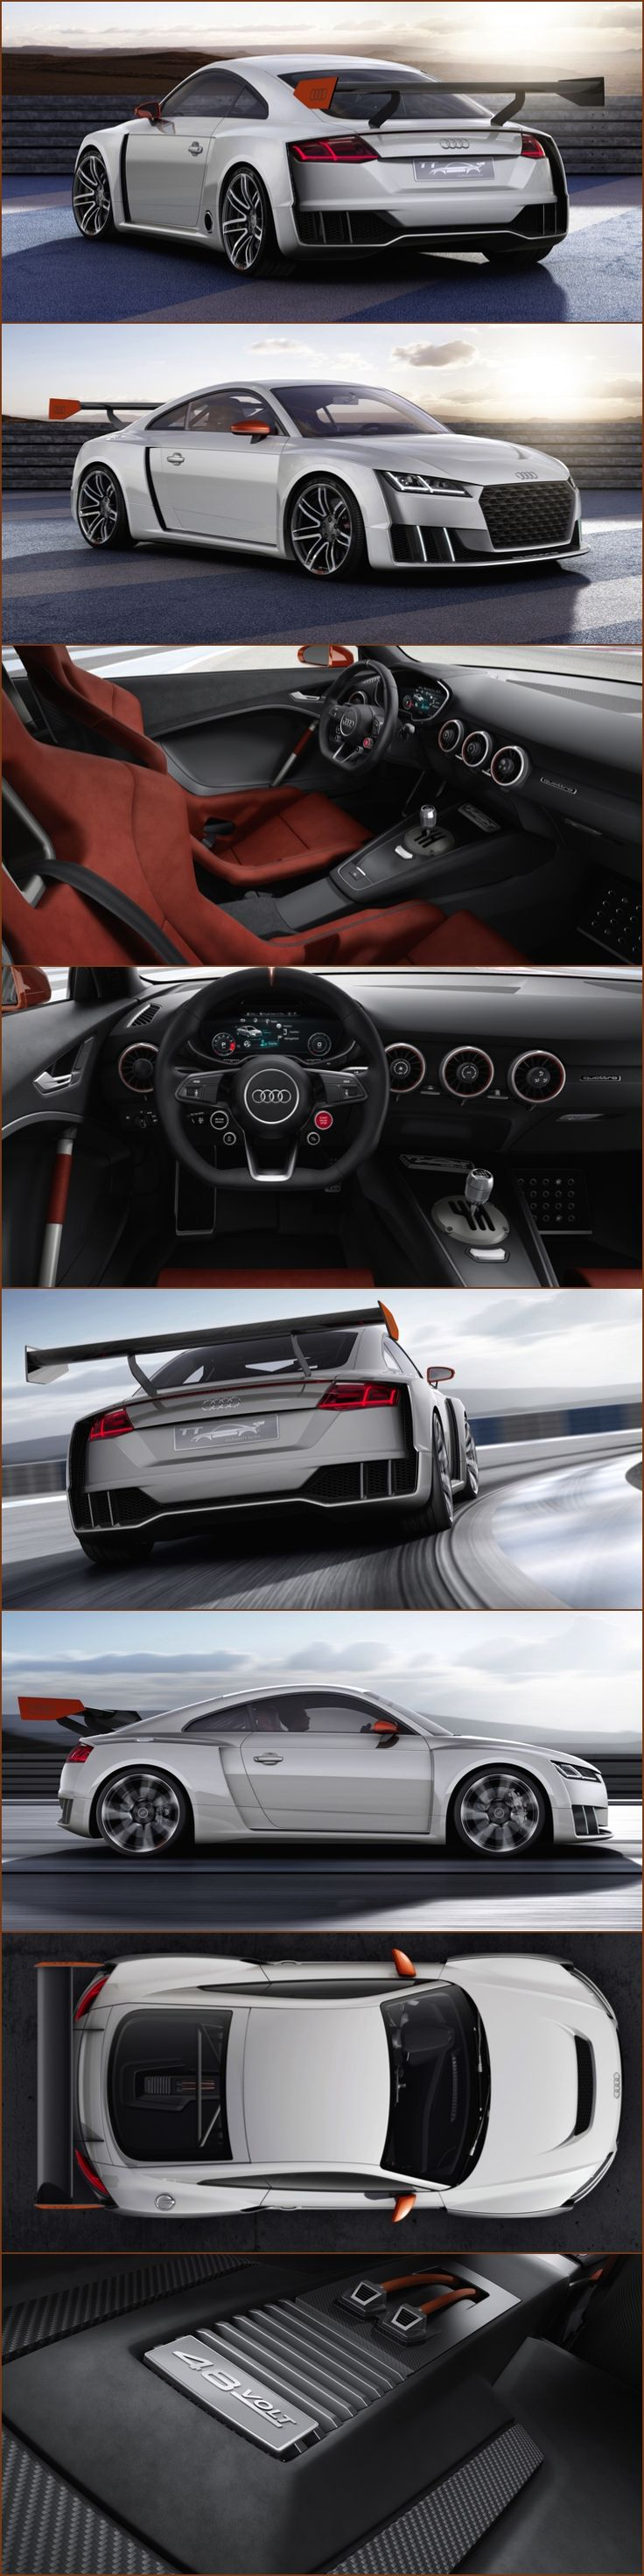 The 600PS Audi TT Concept shows a taste of  the future of turbo power.  First application of electric biturbo propulsion in a TFSI engine and 48v system power.  600PS and 650Nm, 0-62mph in 3.6 seconds and 192mph top speed. Five-cylinder 2.5 TFSI fitted with electric bi-turbo for spontaneous response and torque boost of up to 200Nm quattro all-wheel drive, adjustable coilover suspension and manual transmission with open shift gate, 48-volt electrical system fitted.  #AUDI #TT #Turbo…